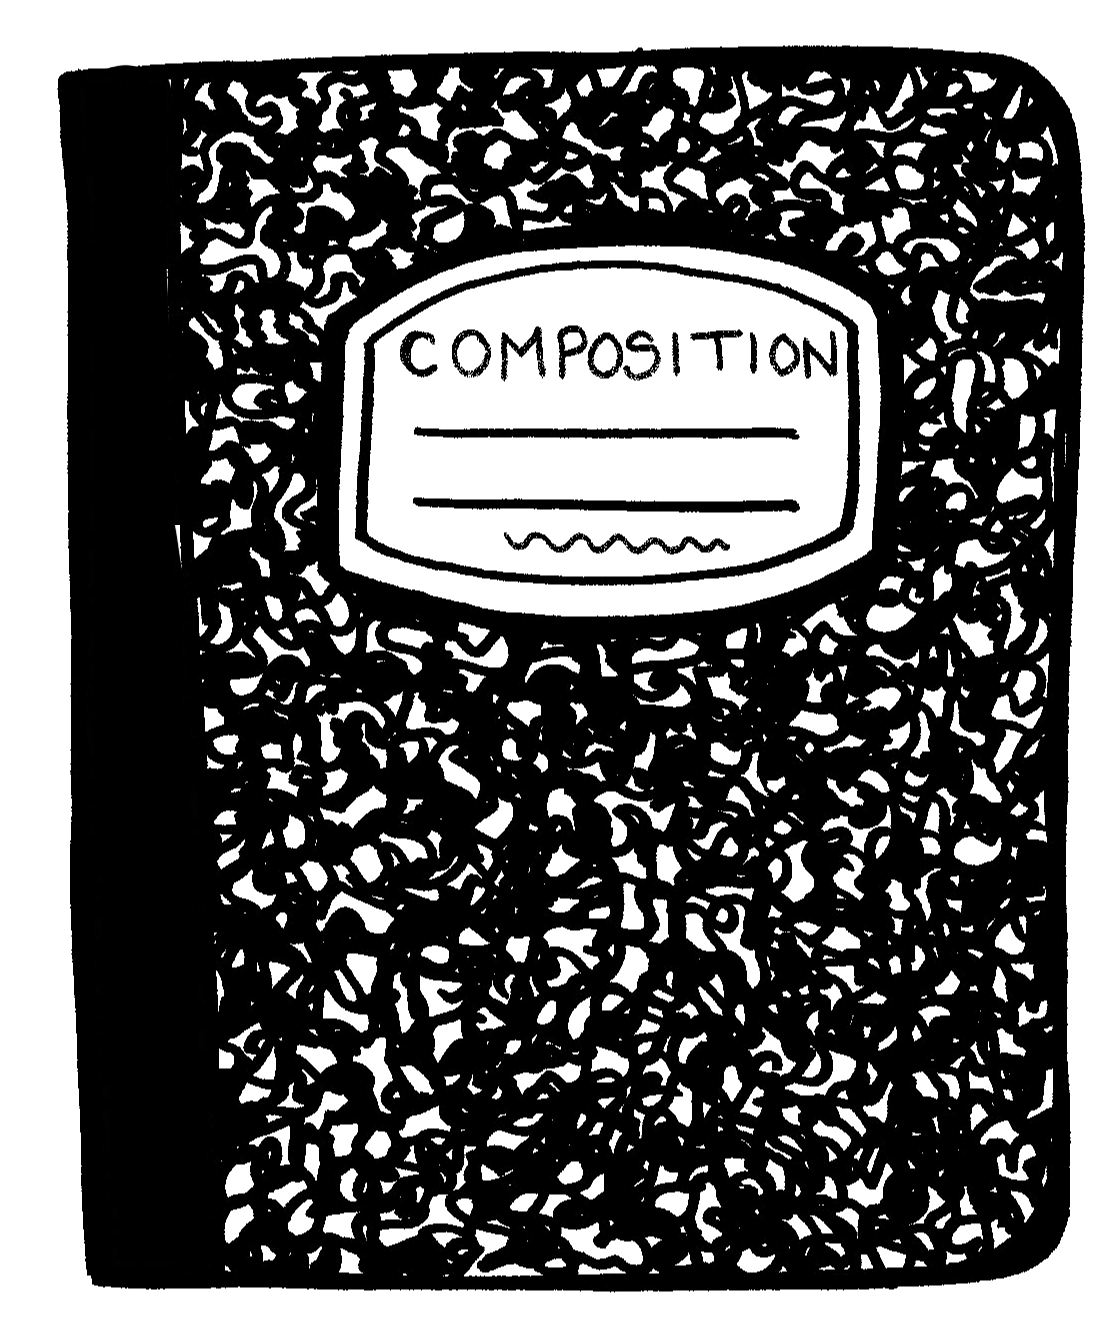 notebook cover clipart - photo #37